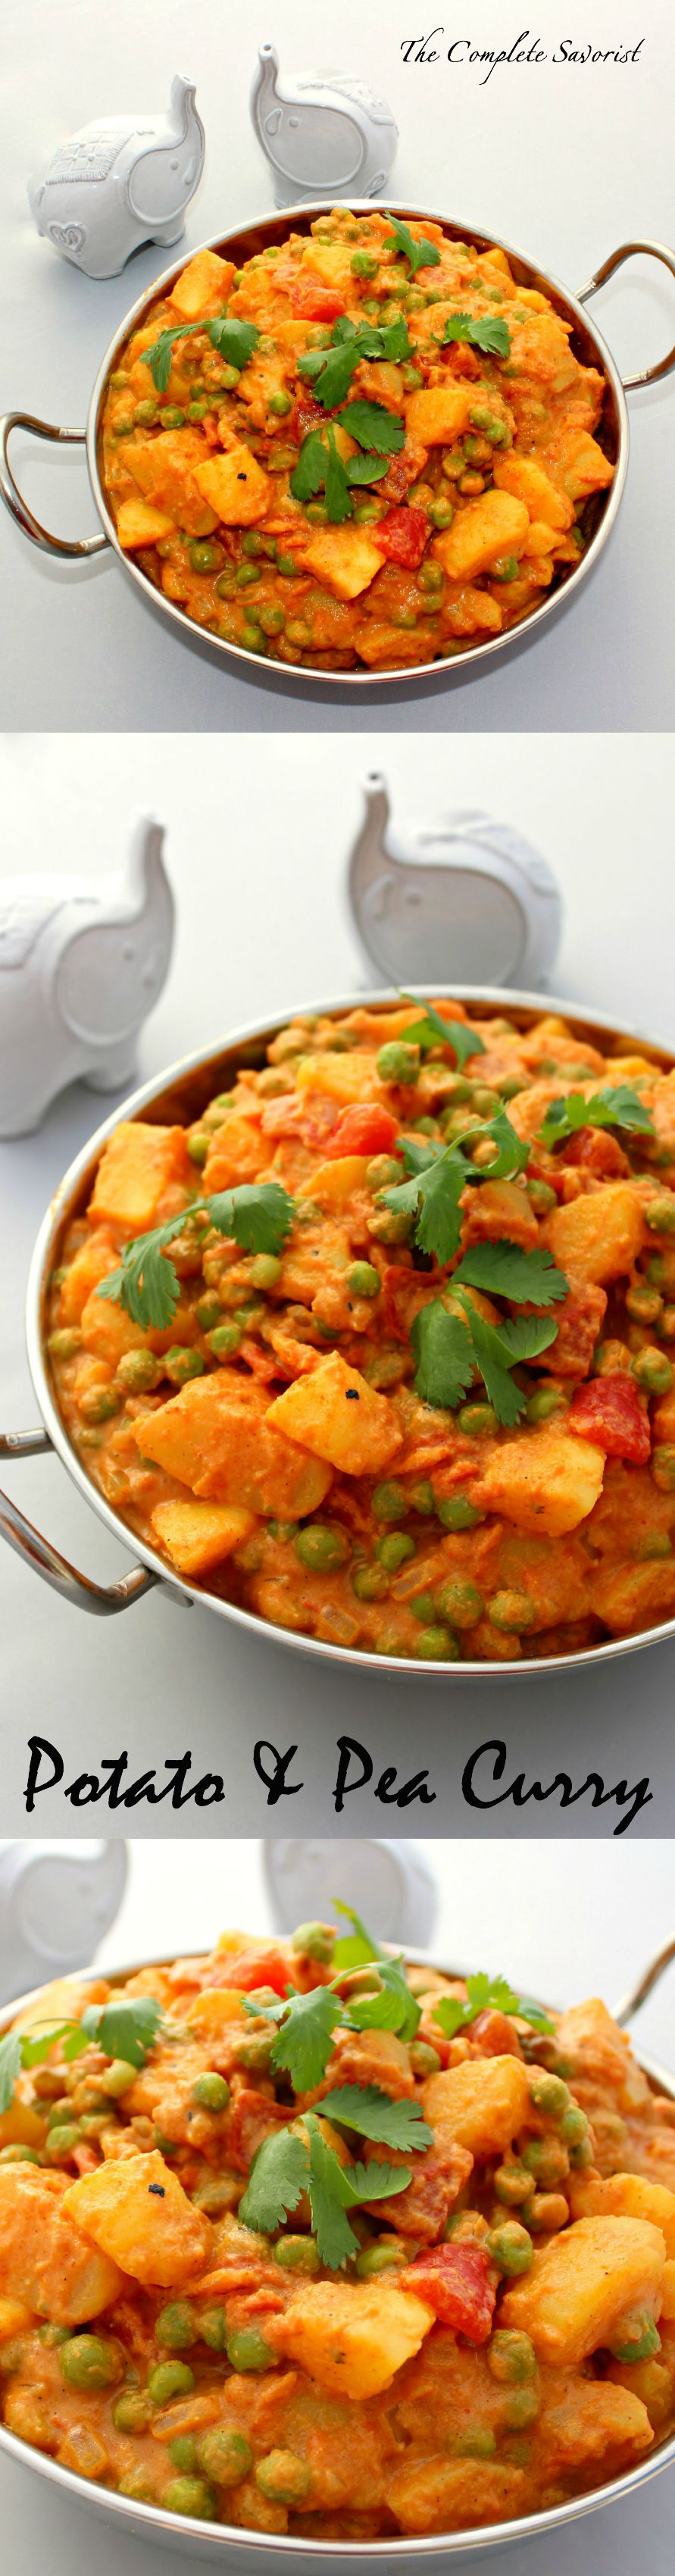 Potato and pea curry the complete savorist potato and pea curry fragrant indian spices enhance a creamy tomato sauce filled with luscious forumfinder Image collections